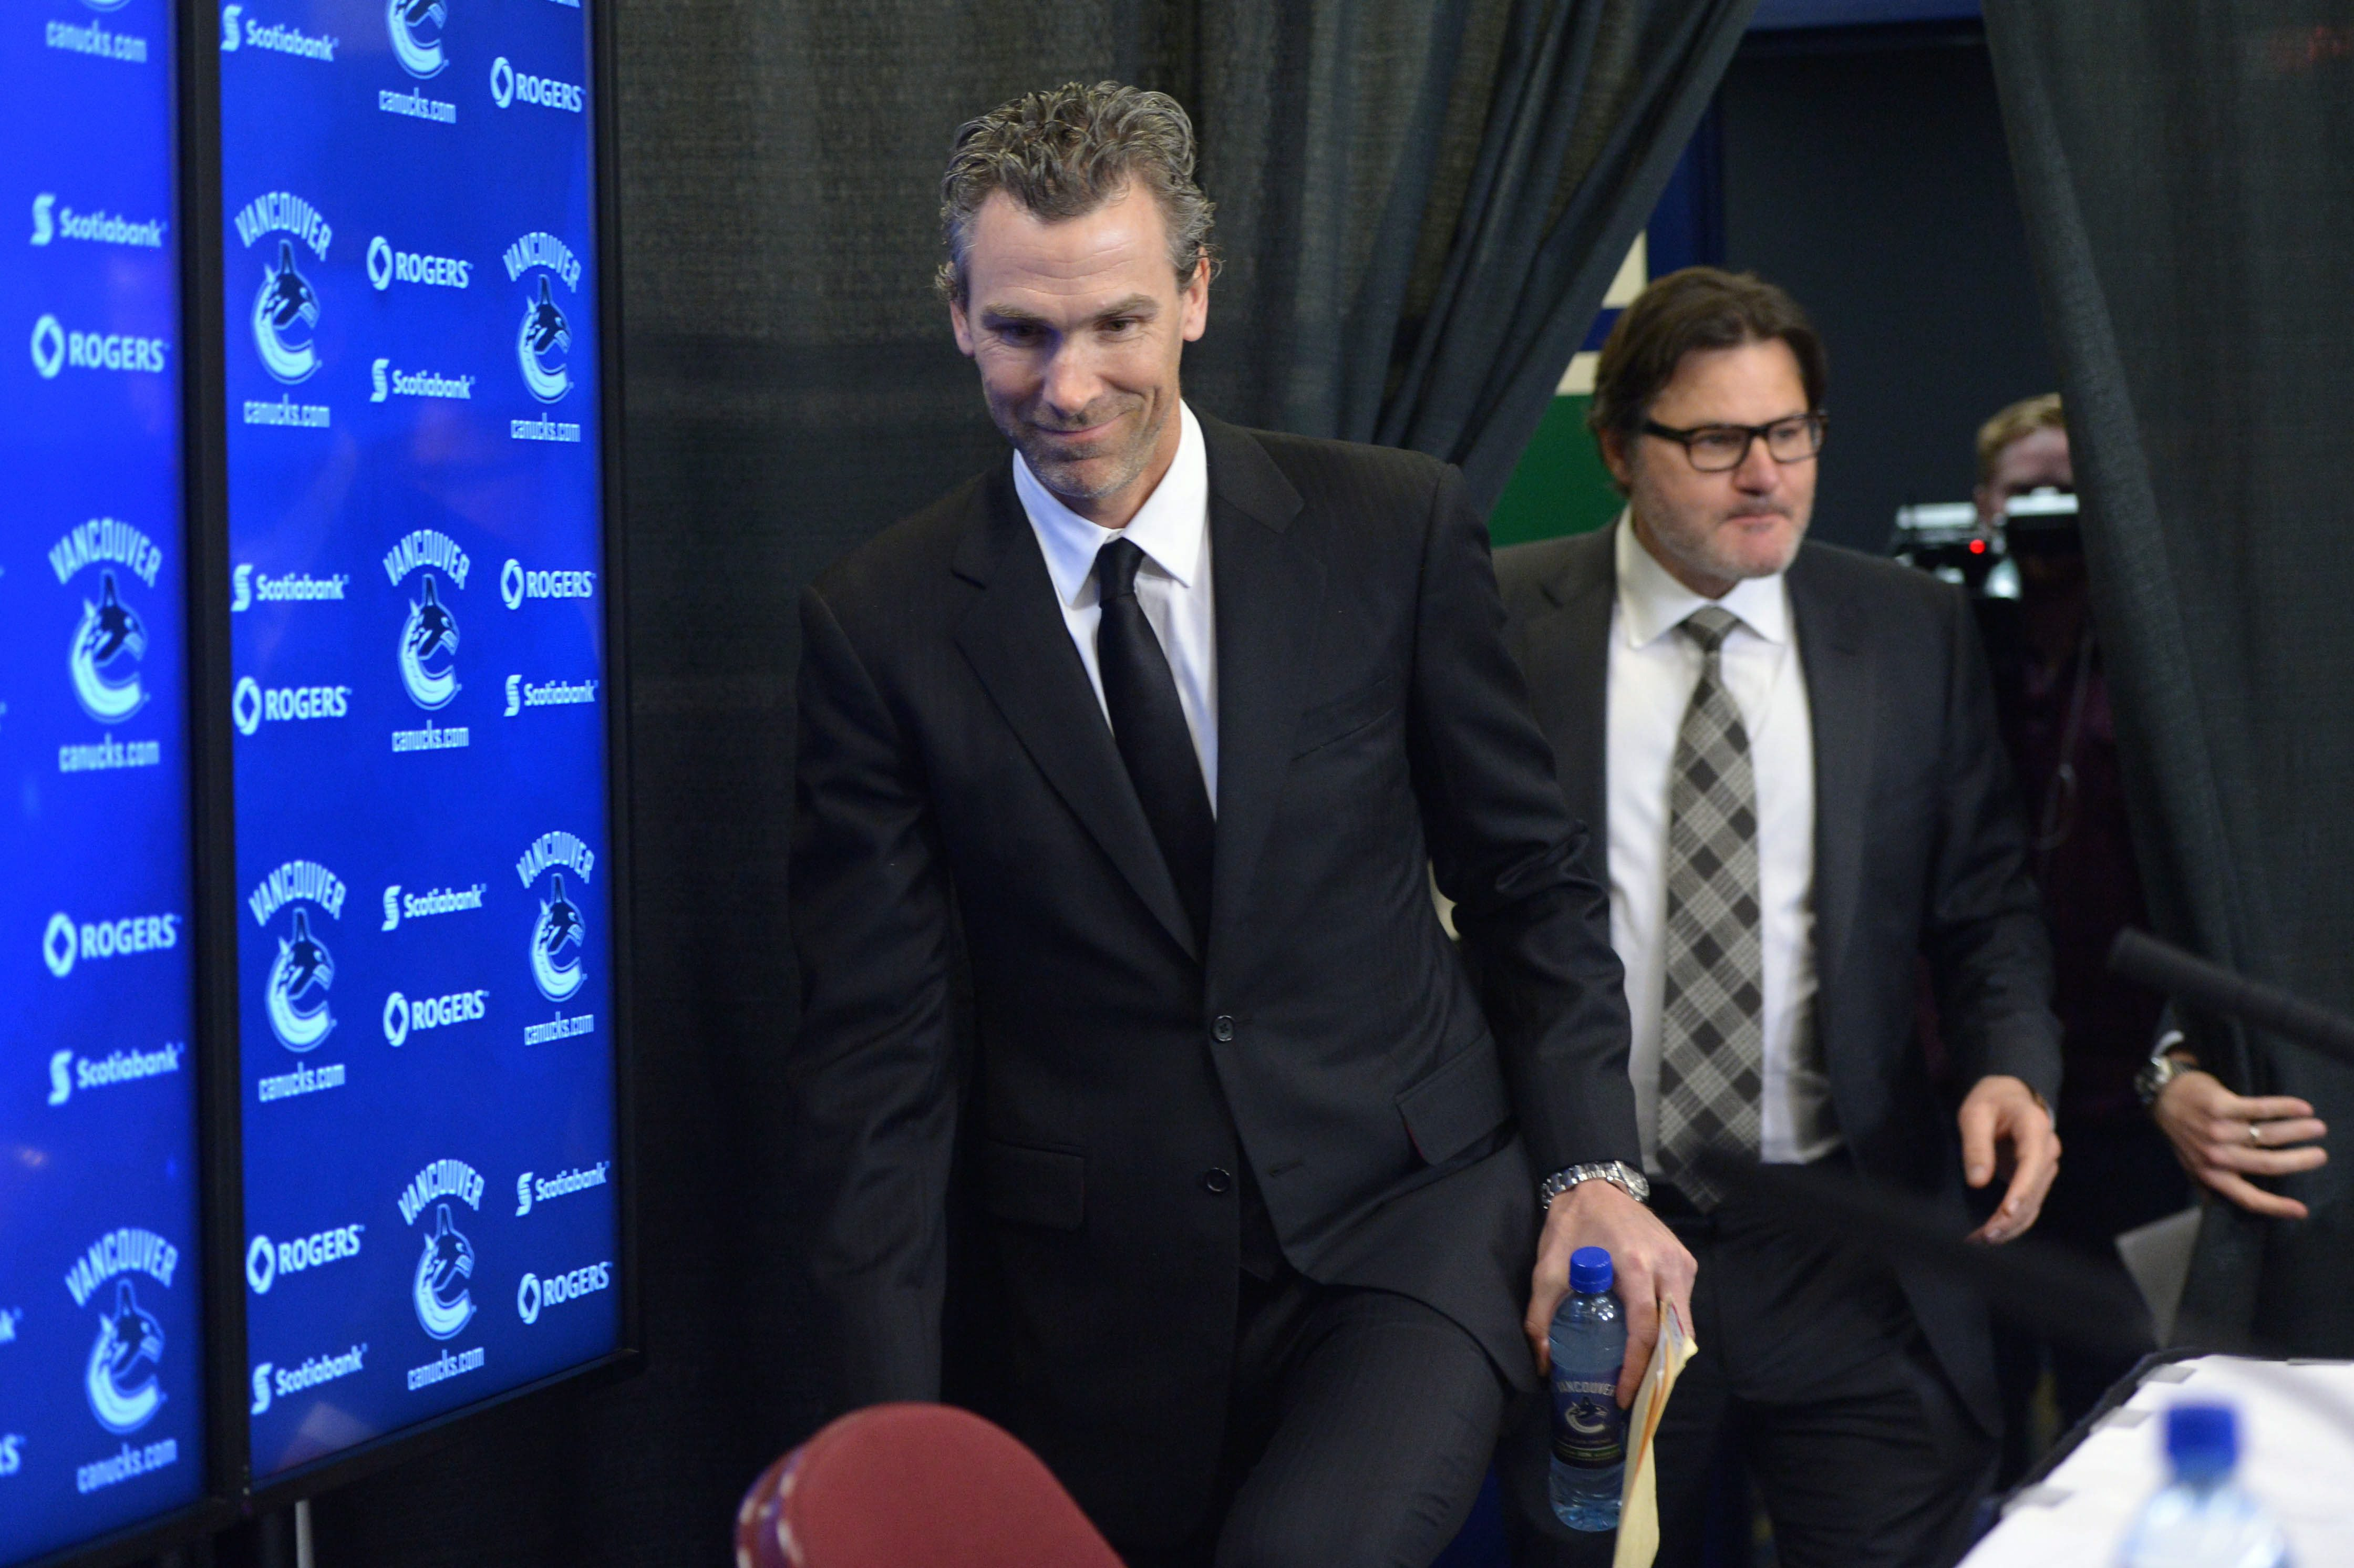 Former Vancouver Canucks captain Trevor Linden arrives for a press conference followed by team owner Francesco Aquilini in Vancouver on Wednesday, April 9, 2014. Linden has been hired as Vancouver's president of hockey operations